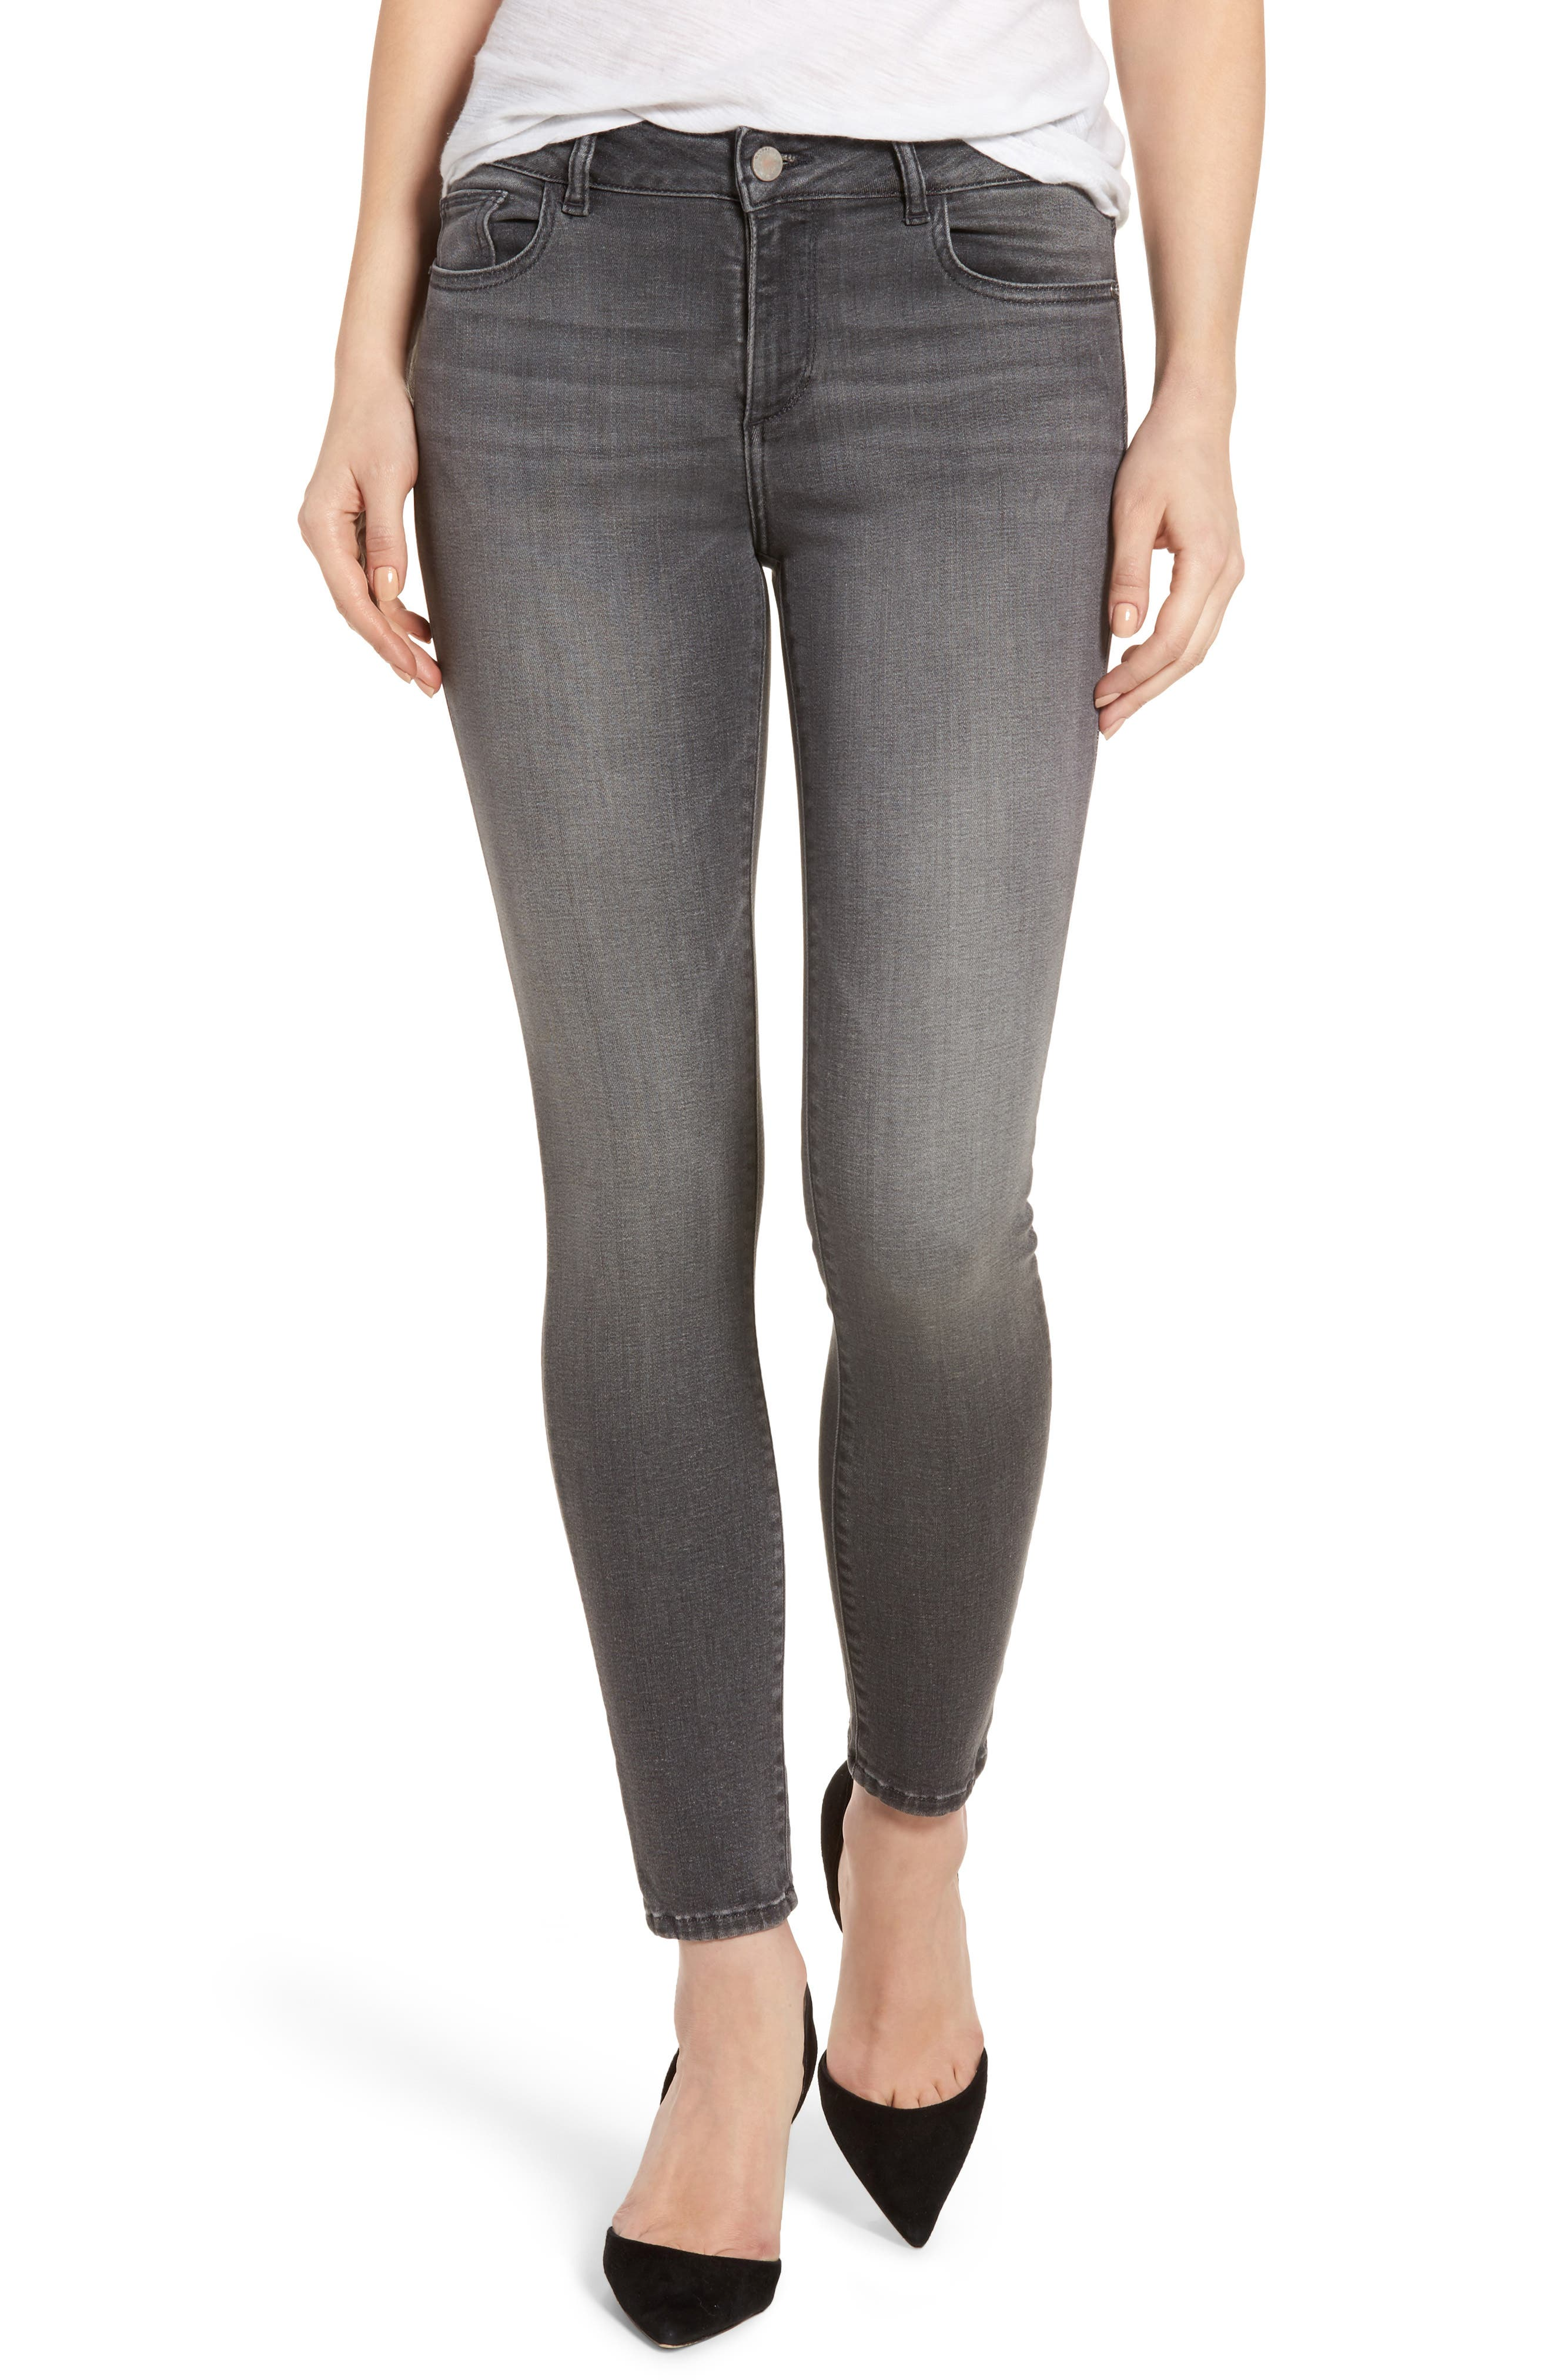 Alternate Image 1 Selected - DL1961 Margaux Instasculpt Ankle Skinny Jeans (Drizzle)